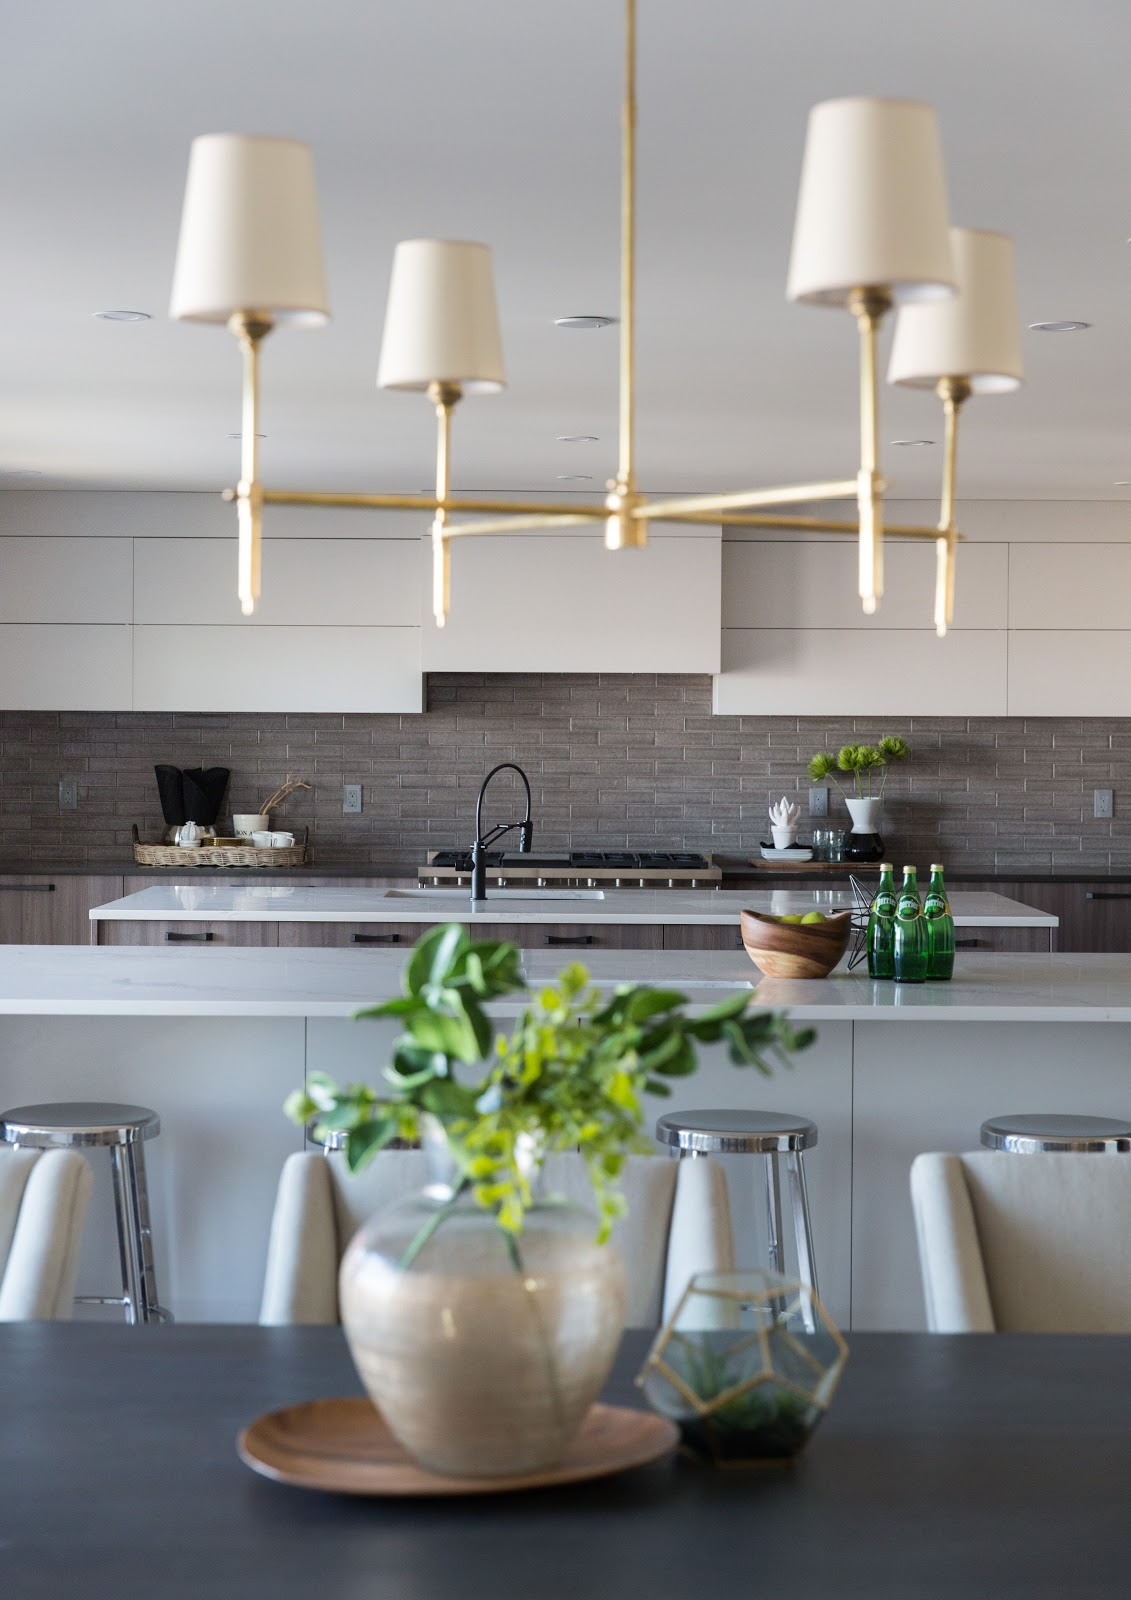 soft modern traditional lighting, textured tan backsplash double island calgary design